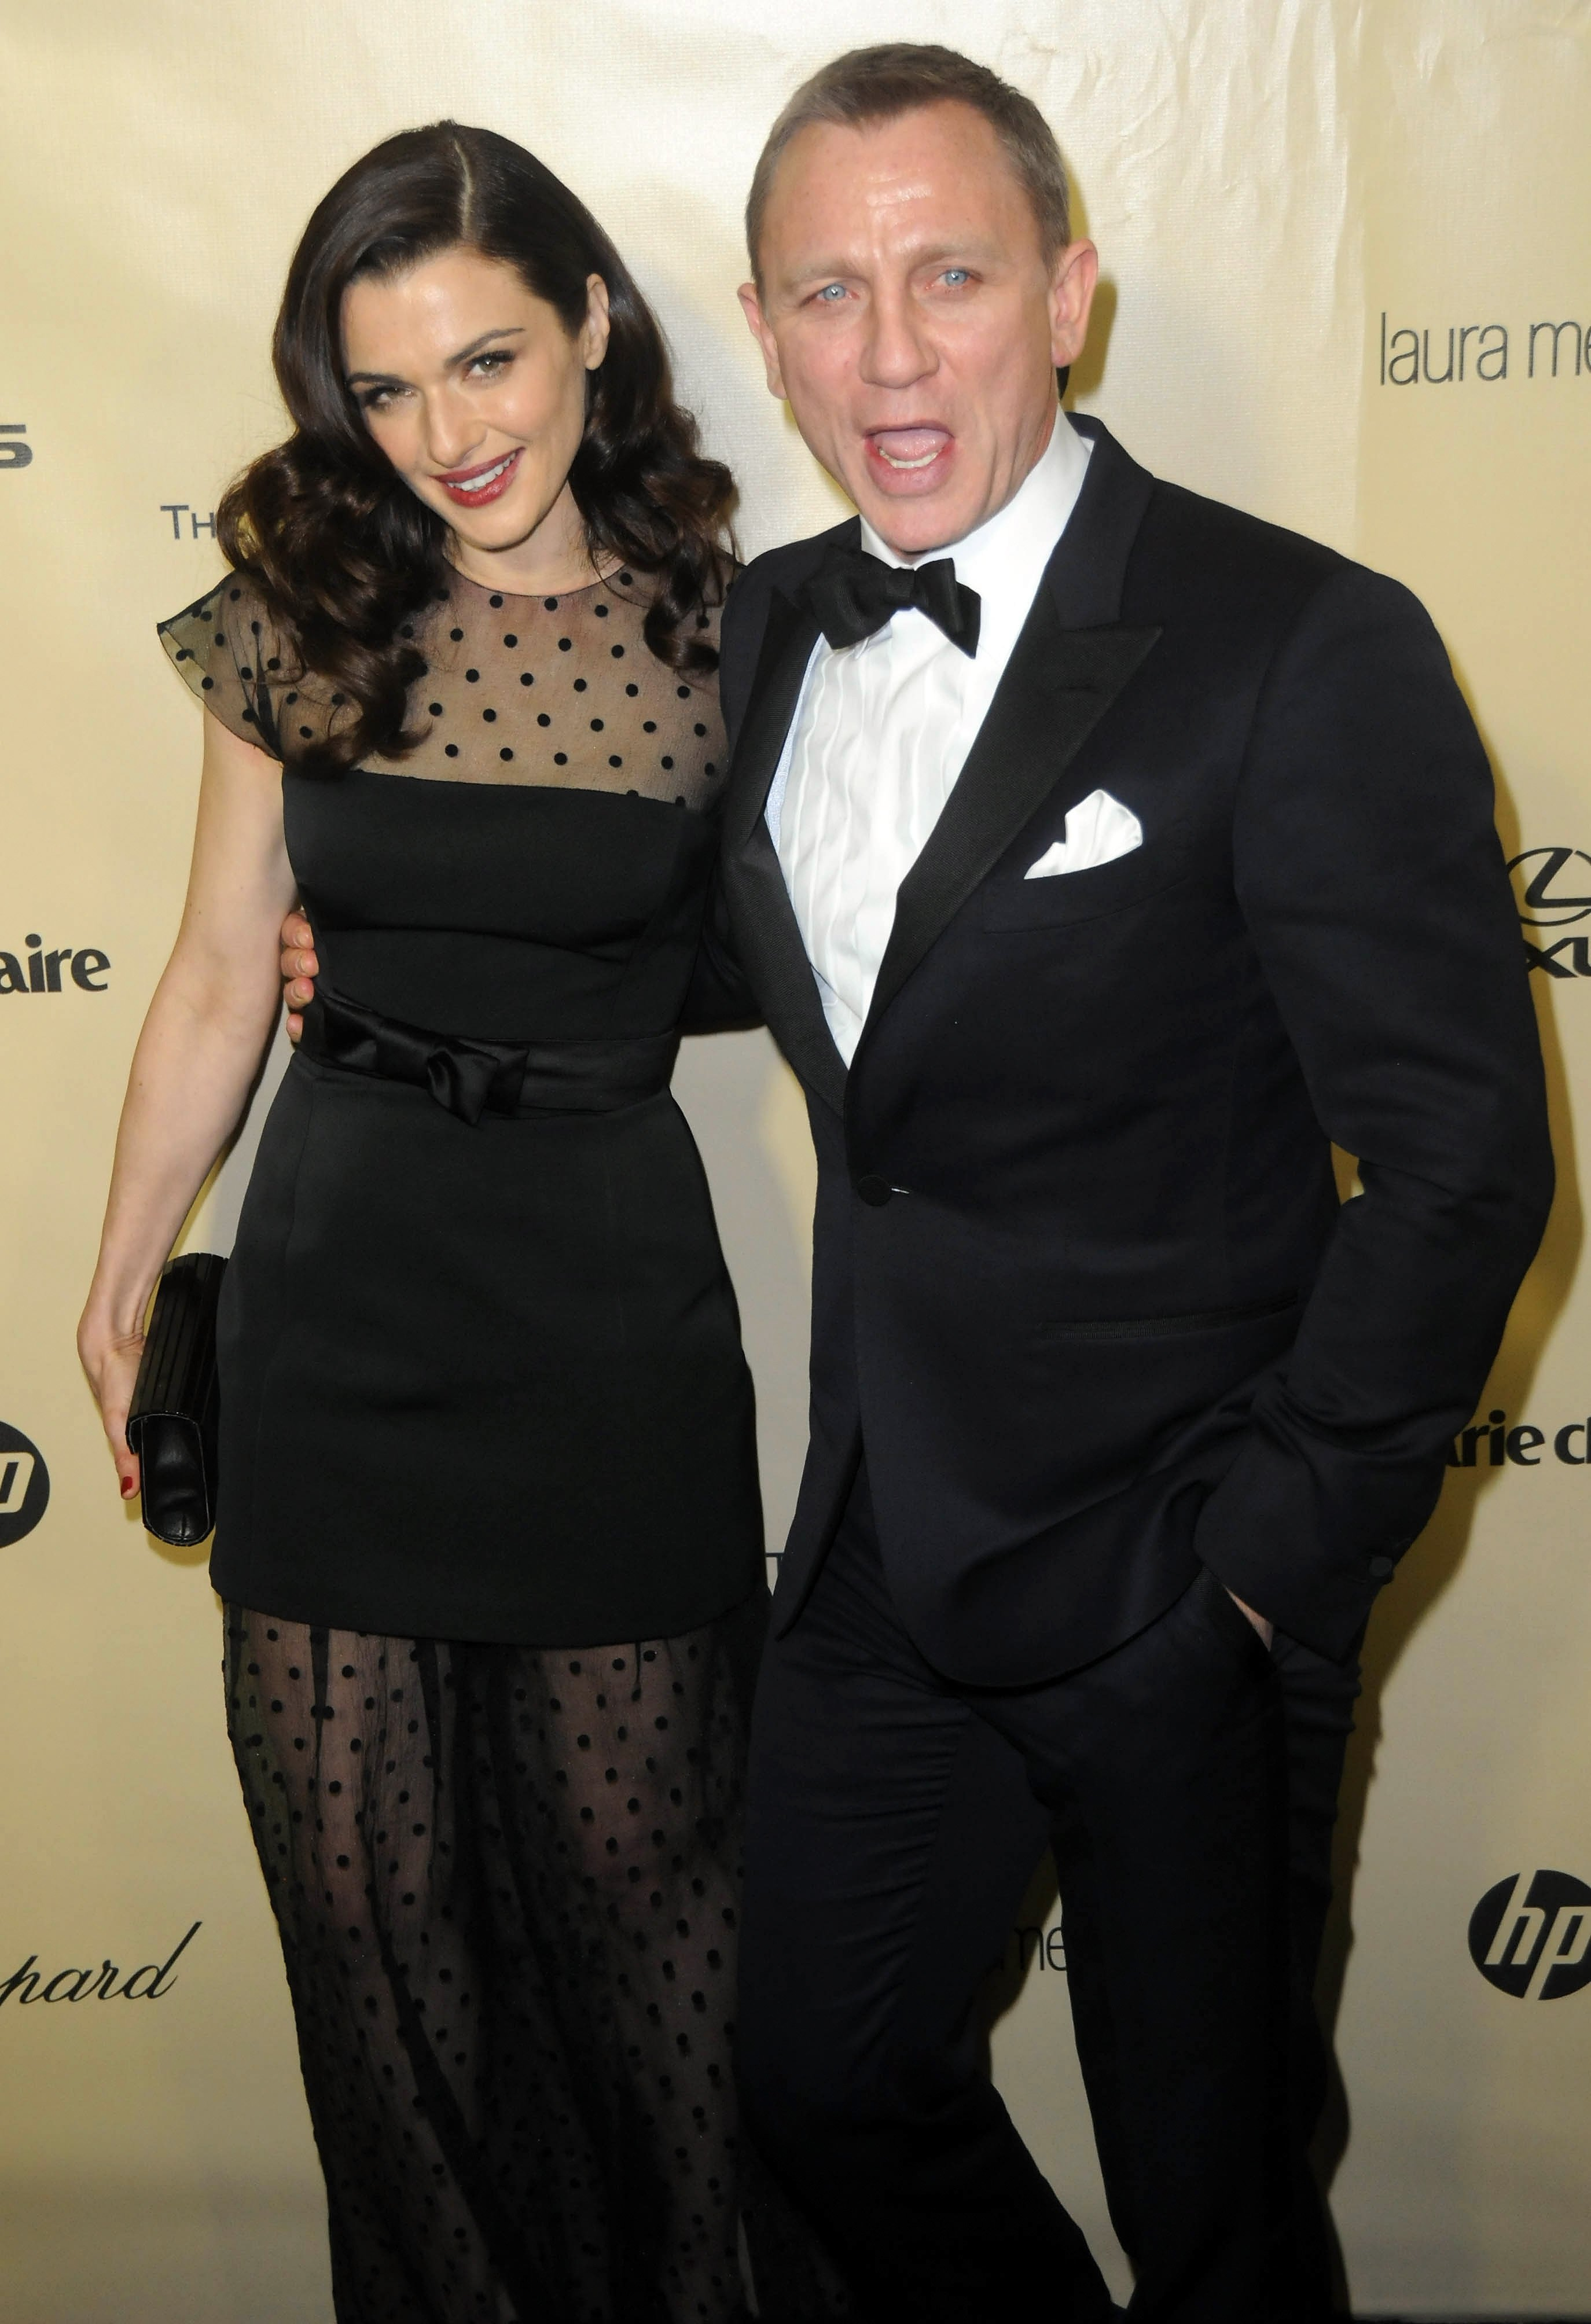 Rachel Weisz and Daniel Craig attend the Golden Globe Awards After Party in Beverly Hills, California on January 13, 2013 | Photo: Getty Images